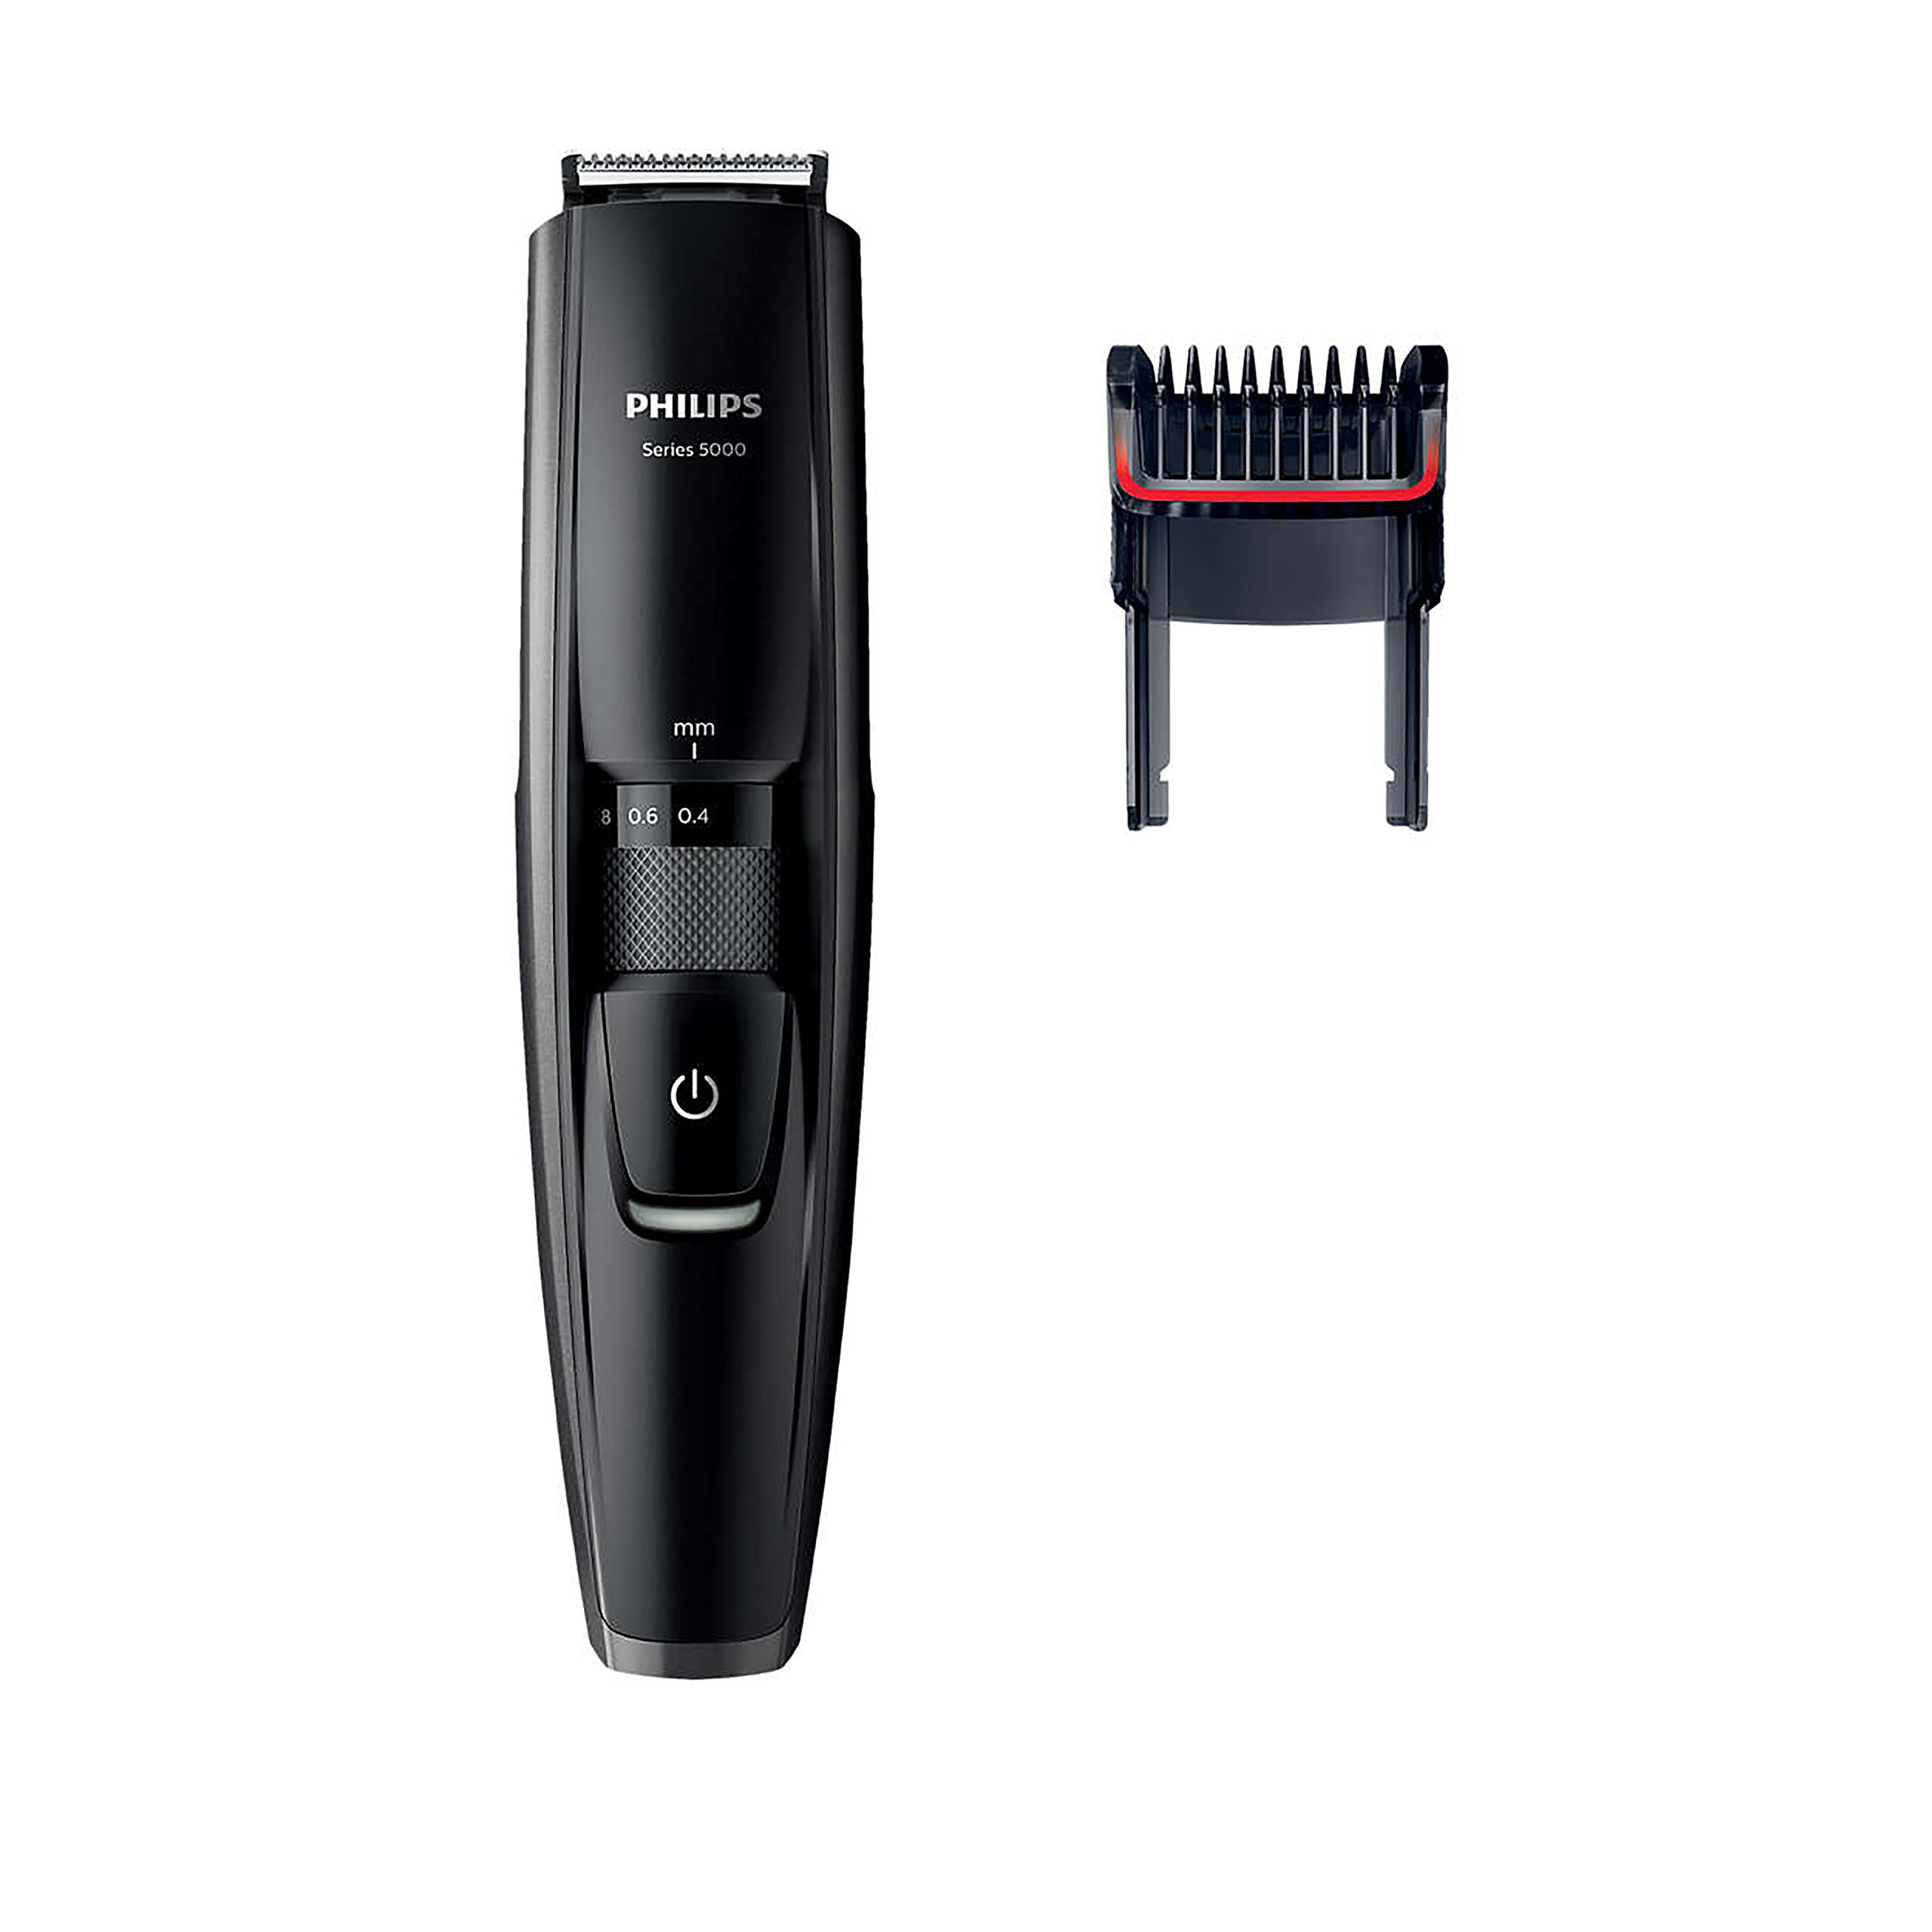 Philips BT5200/16 - Barbero con cuchillas metálicas y peine-guía integrado, color